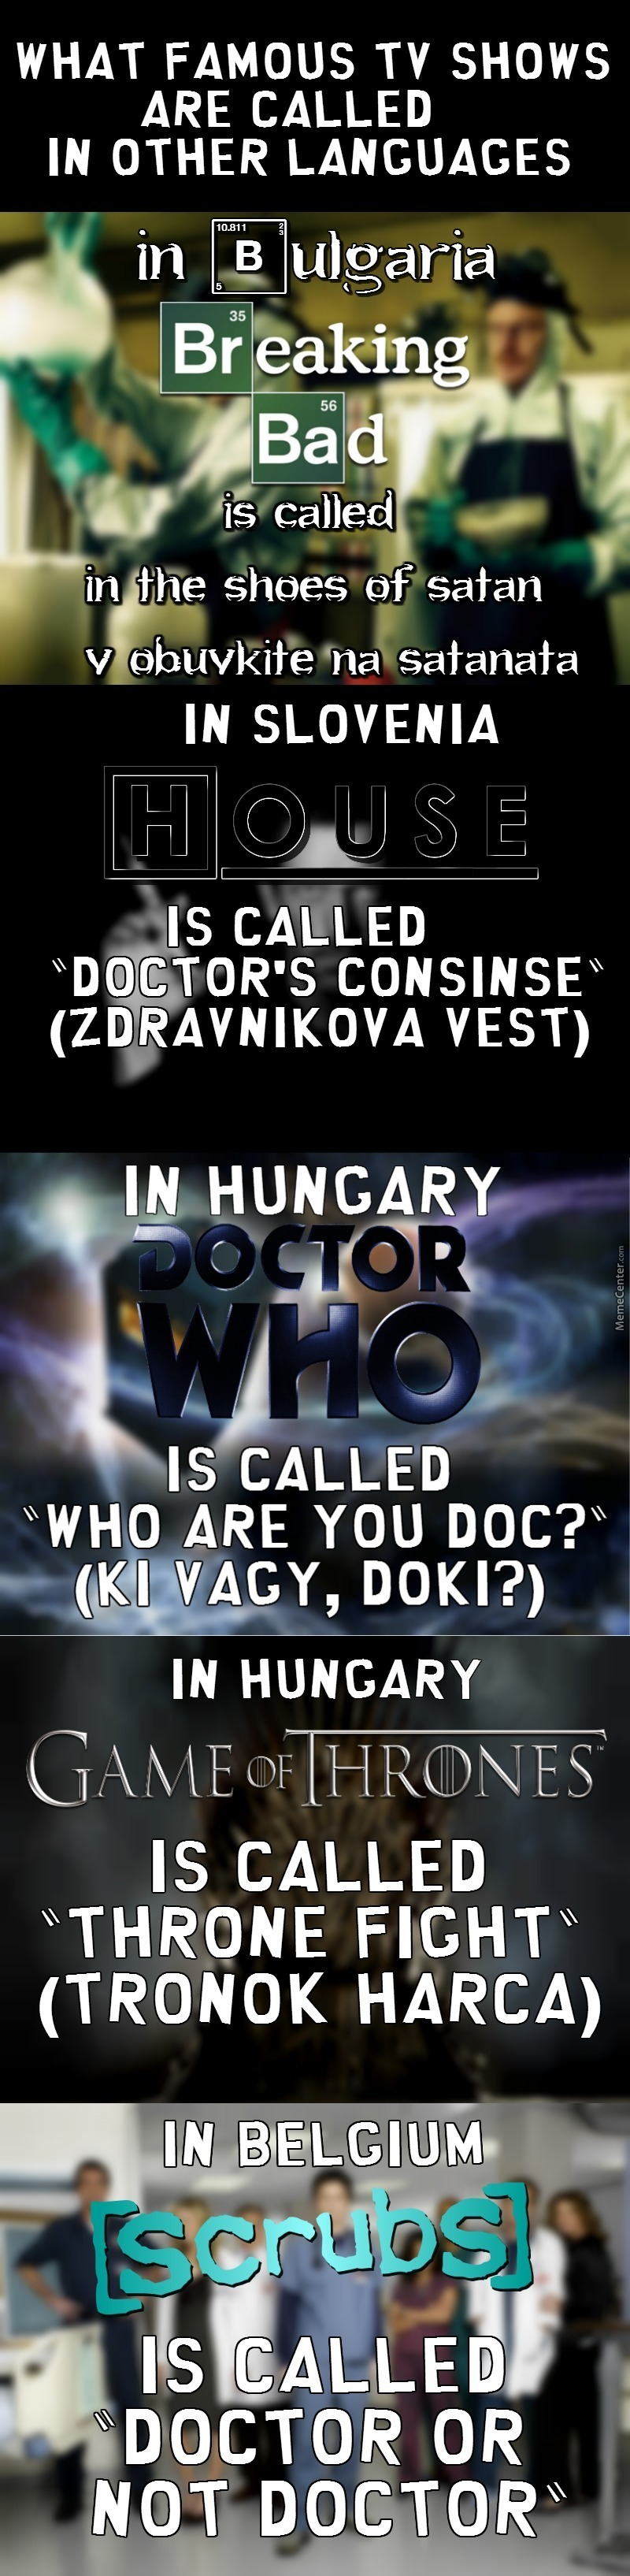 What Popular Tv Shows Are Called In Other Languages